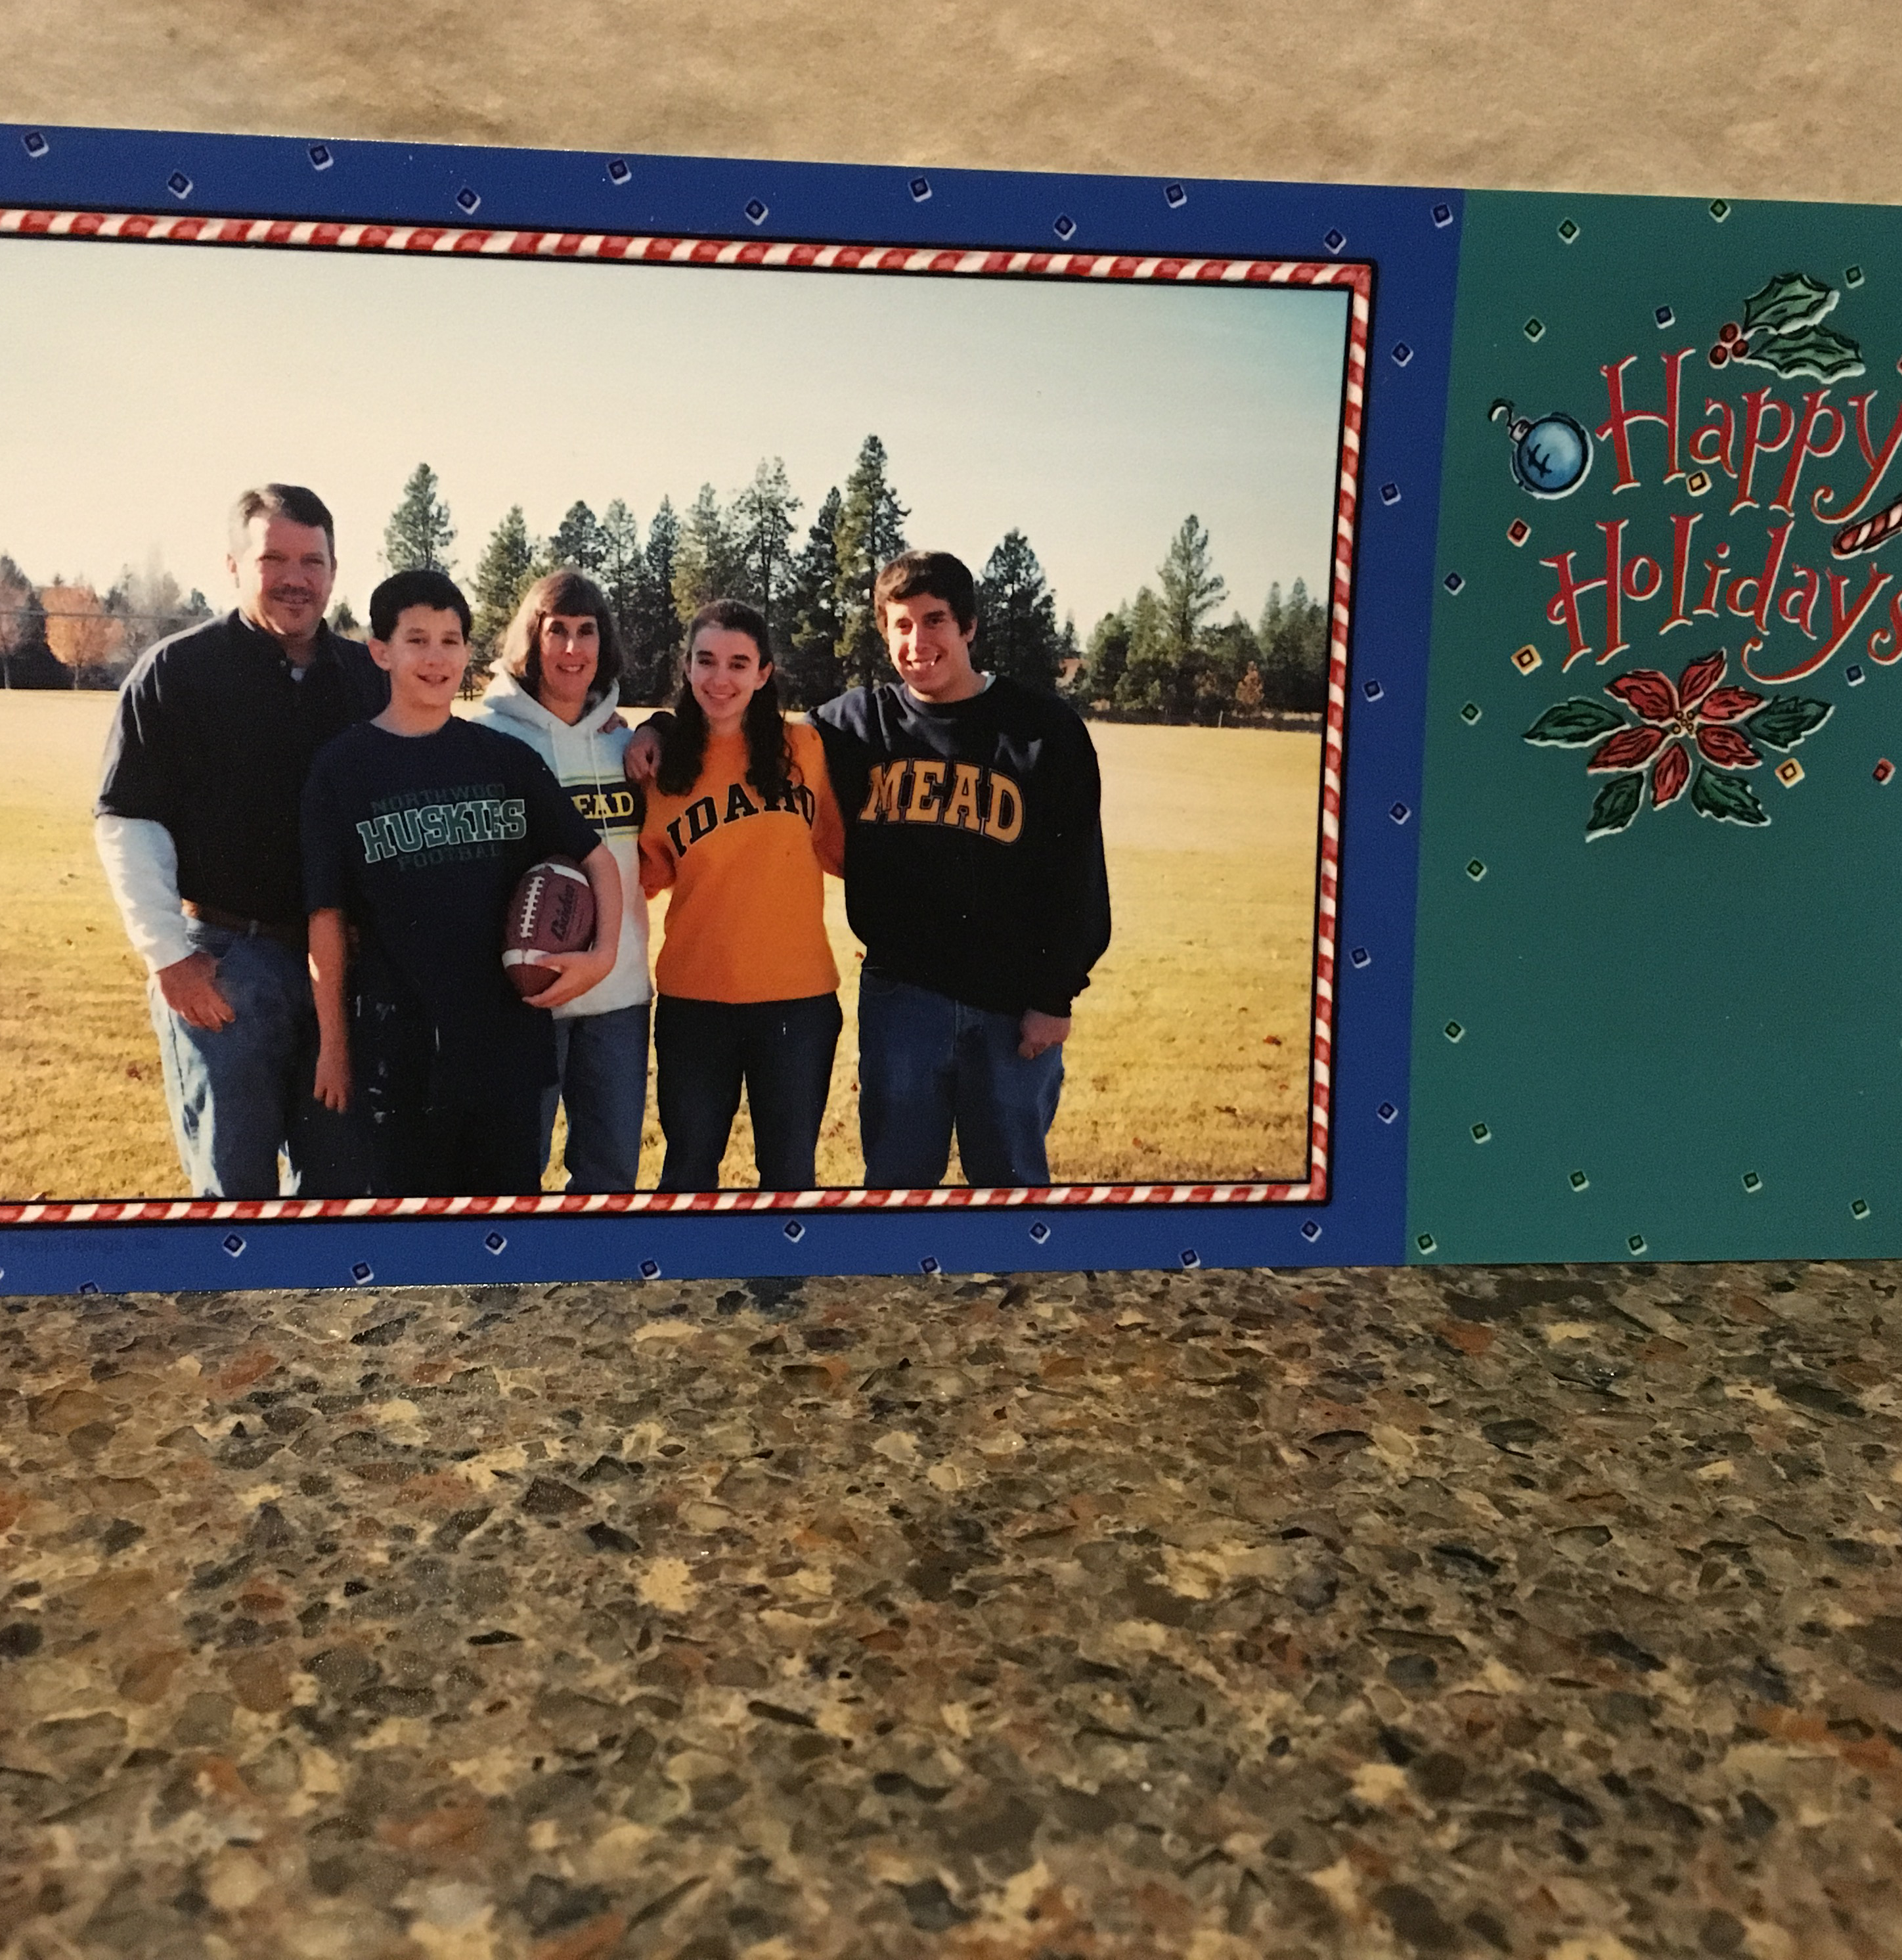 This Christmas card is from 2001. Glen is wearing his middle school shirt, I am wearing my high school sweatshirt, and my sister is wearing her college sweatshirt. I really like the colors in this photo.